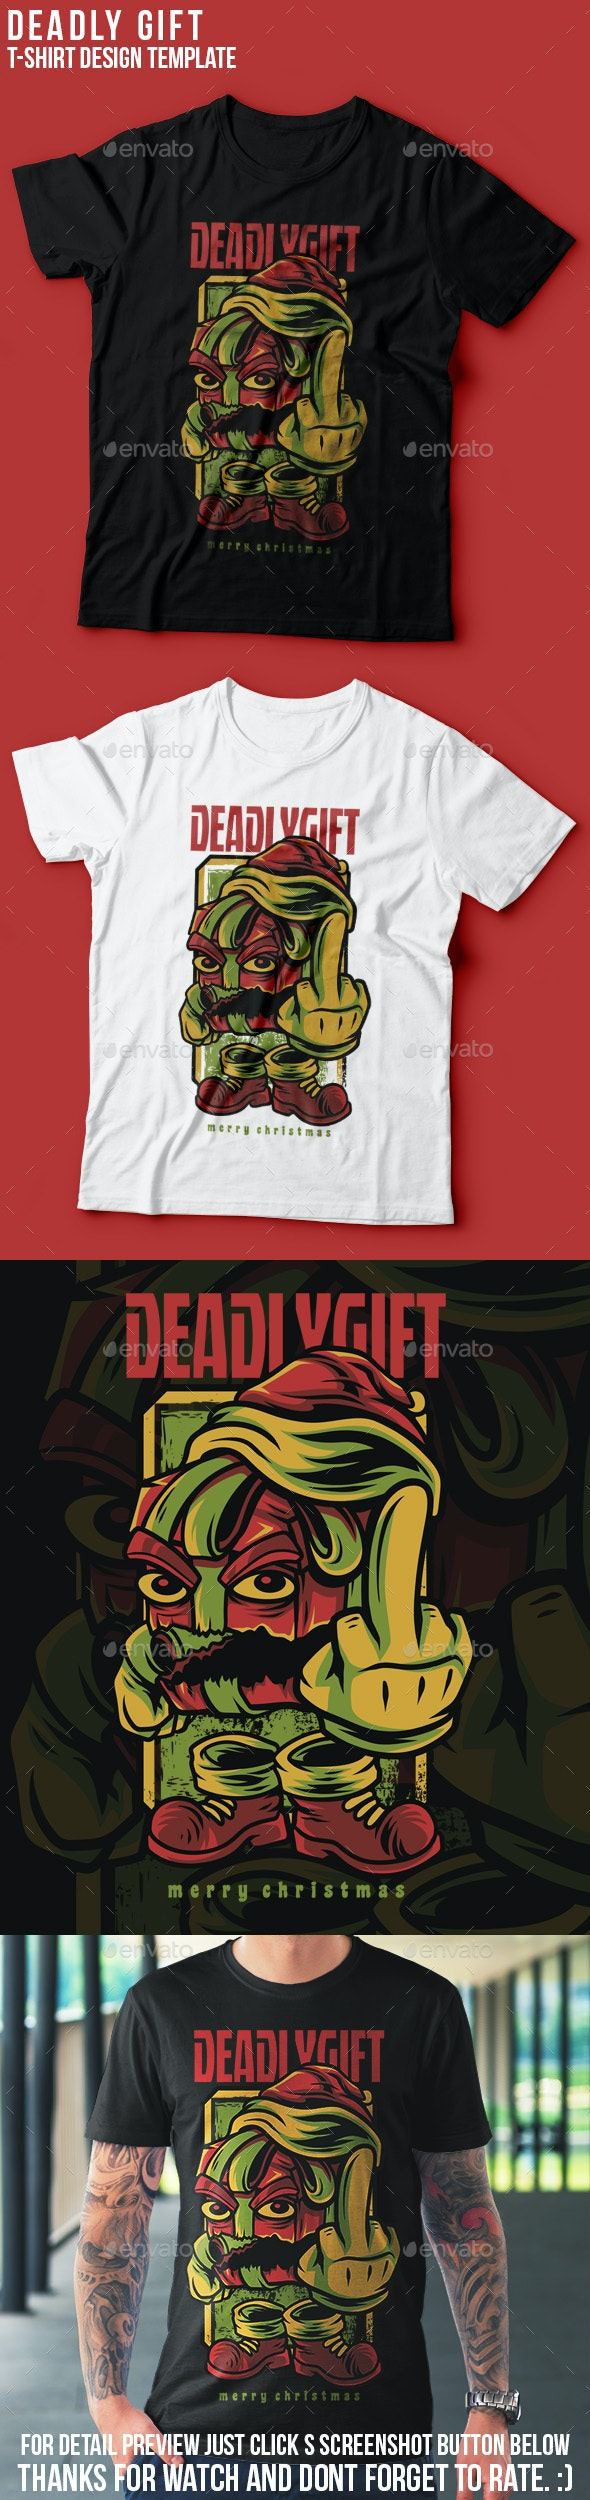 Deadly Gift Happy Christmas T-Shirt Design - Events T-Shirts